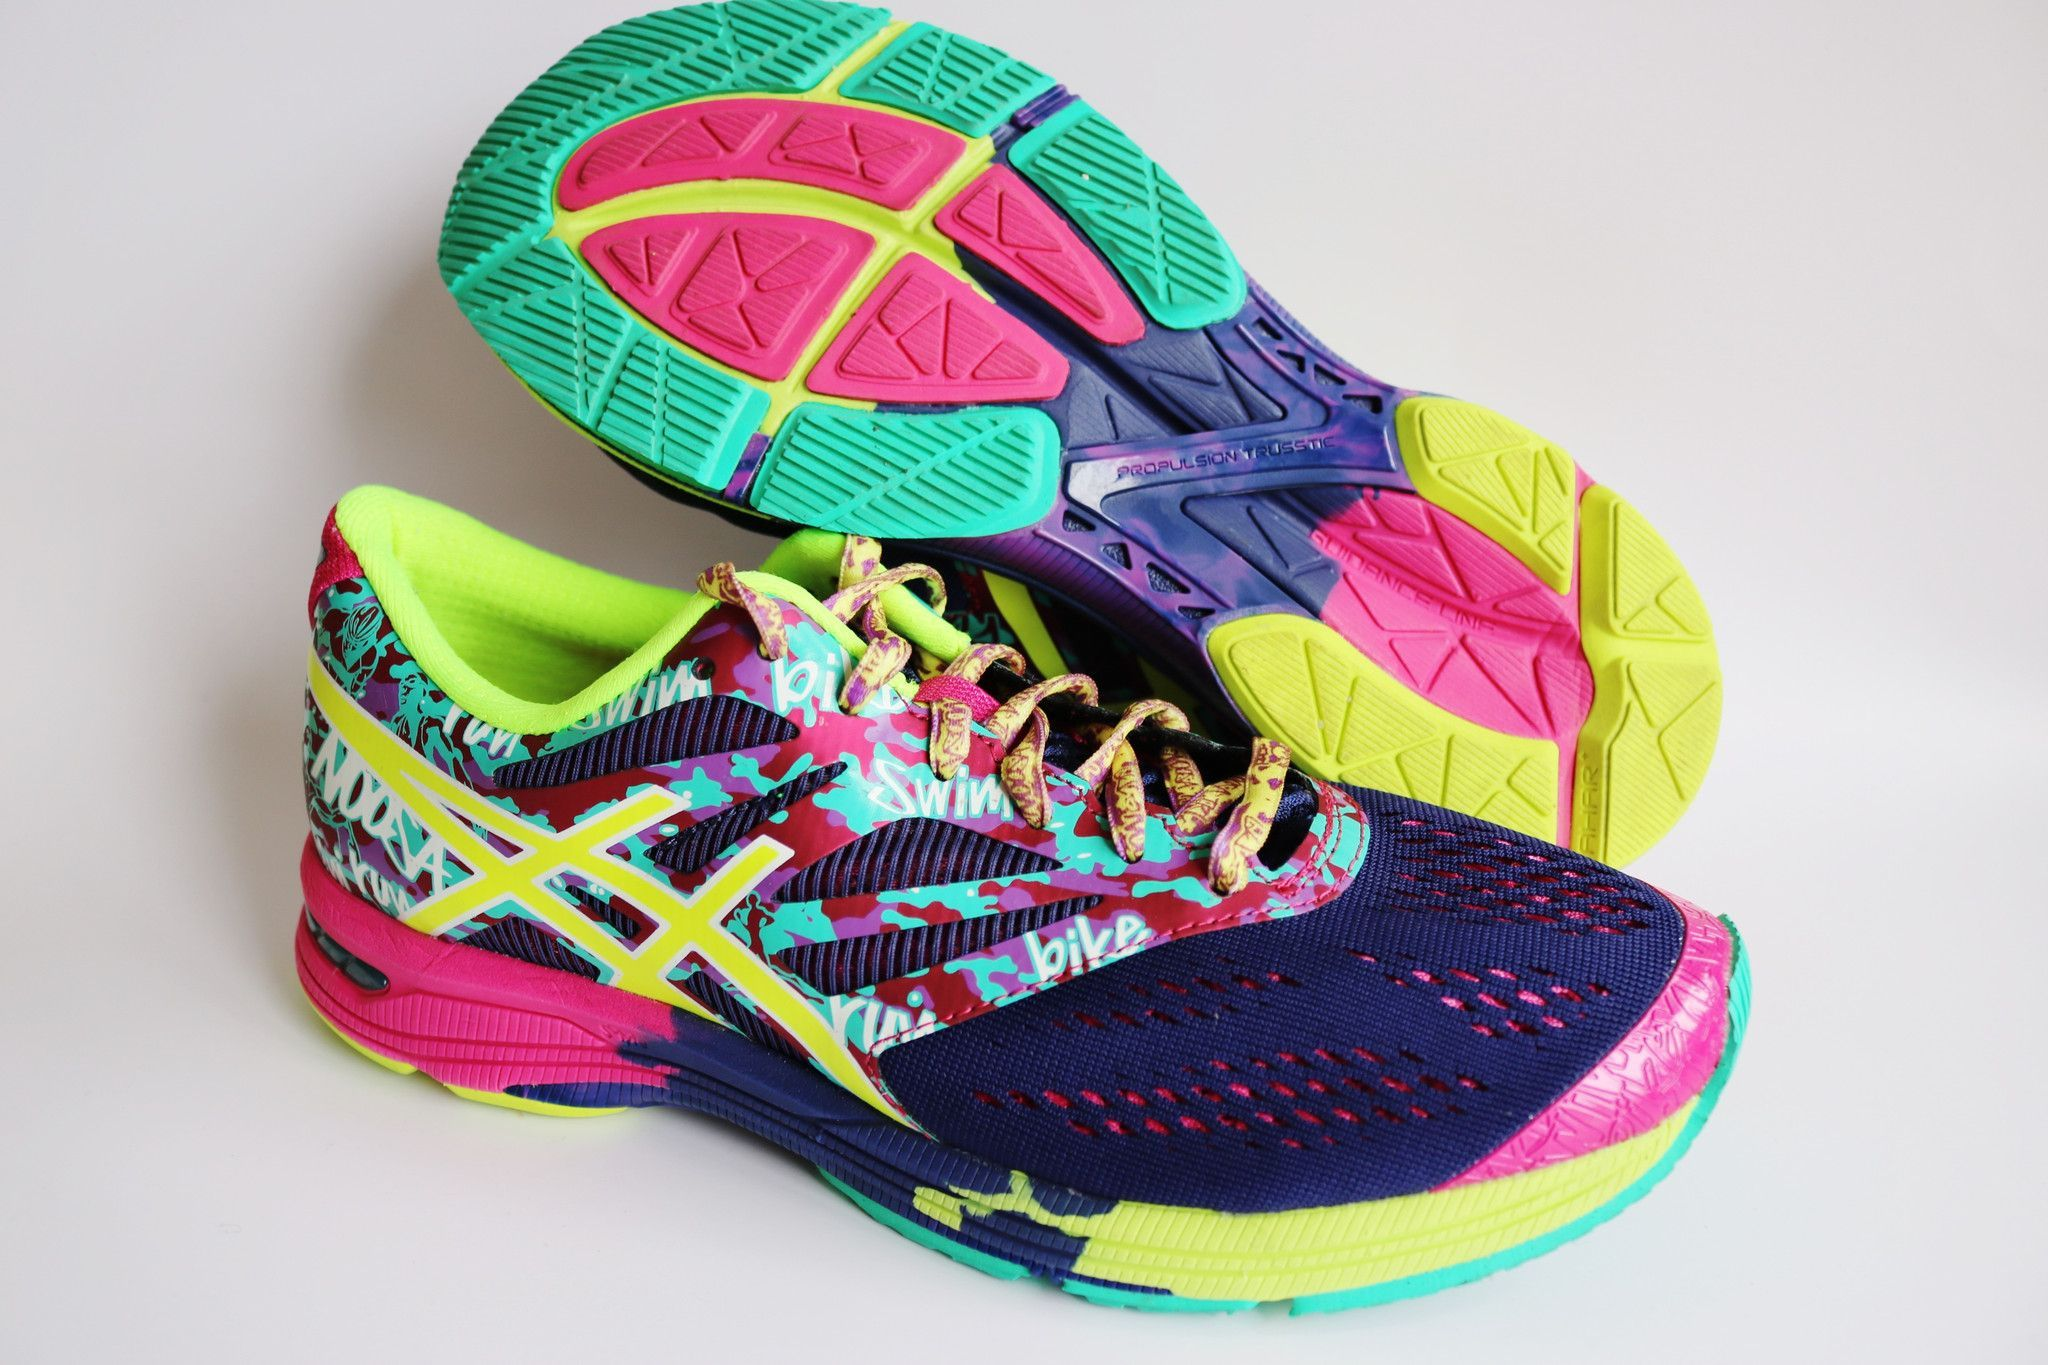 Shop Asics Gel Noosa TRI 10 Trainers Womens Sports footwear Womens Trainers COLOUR-navy/yellow/pink